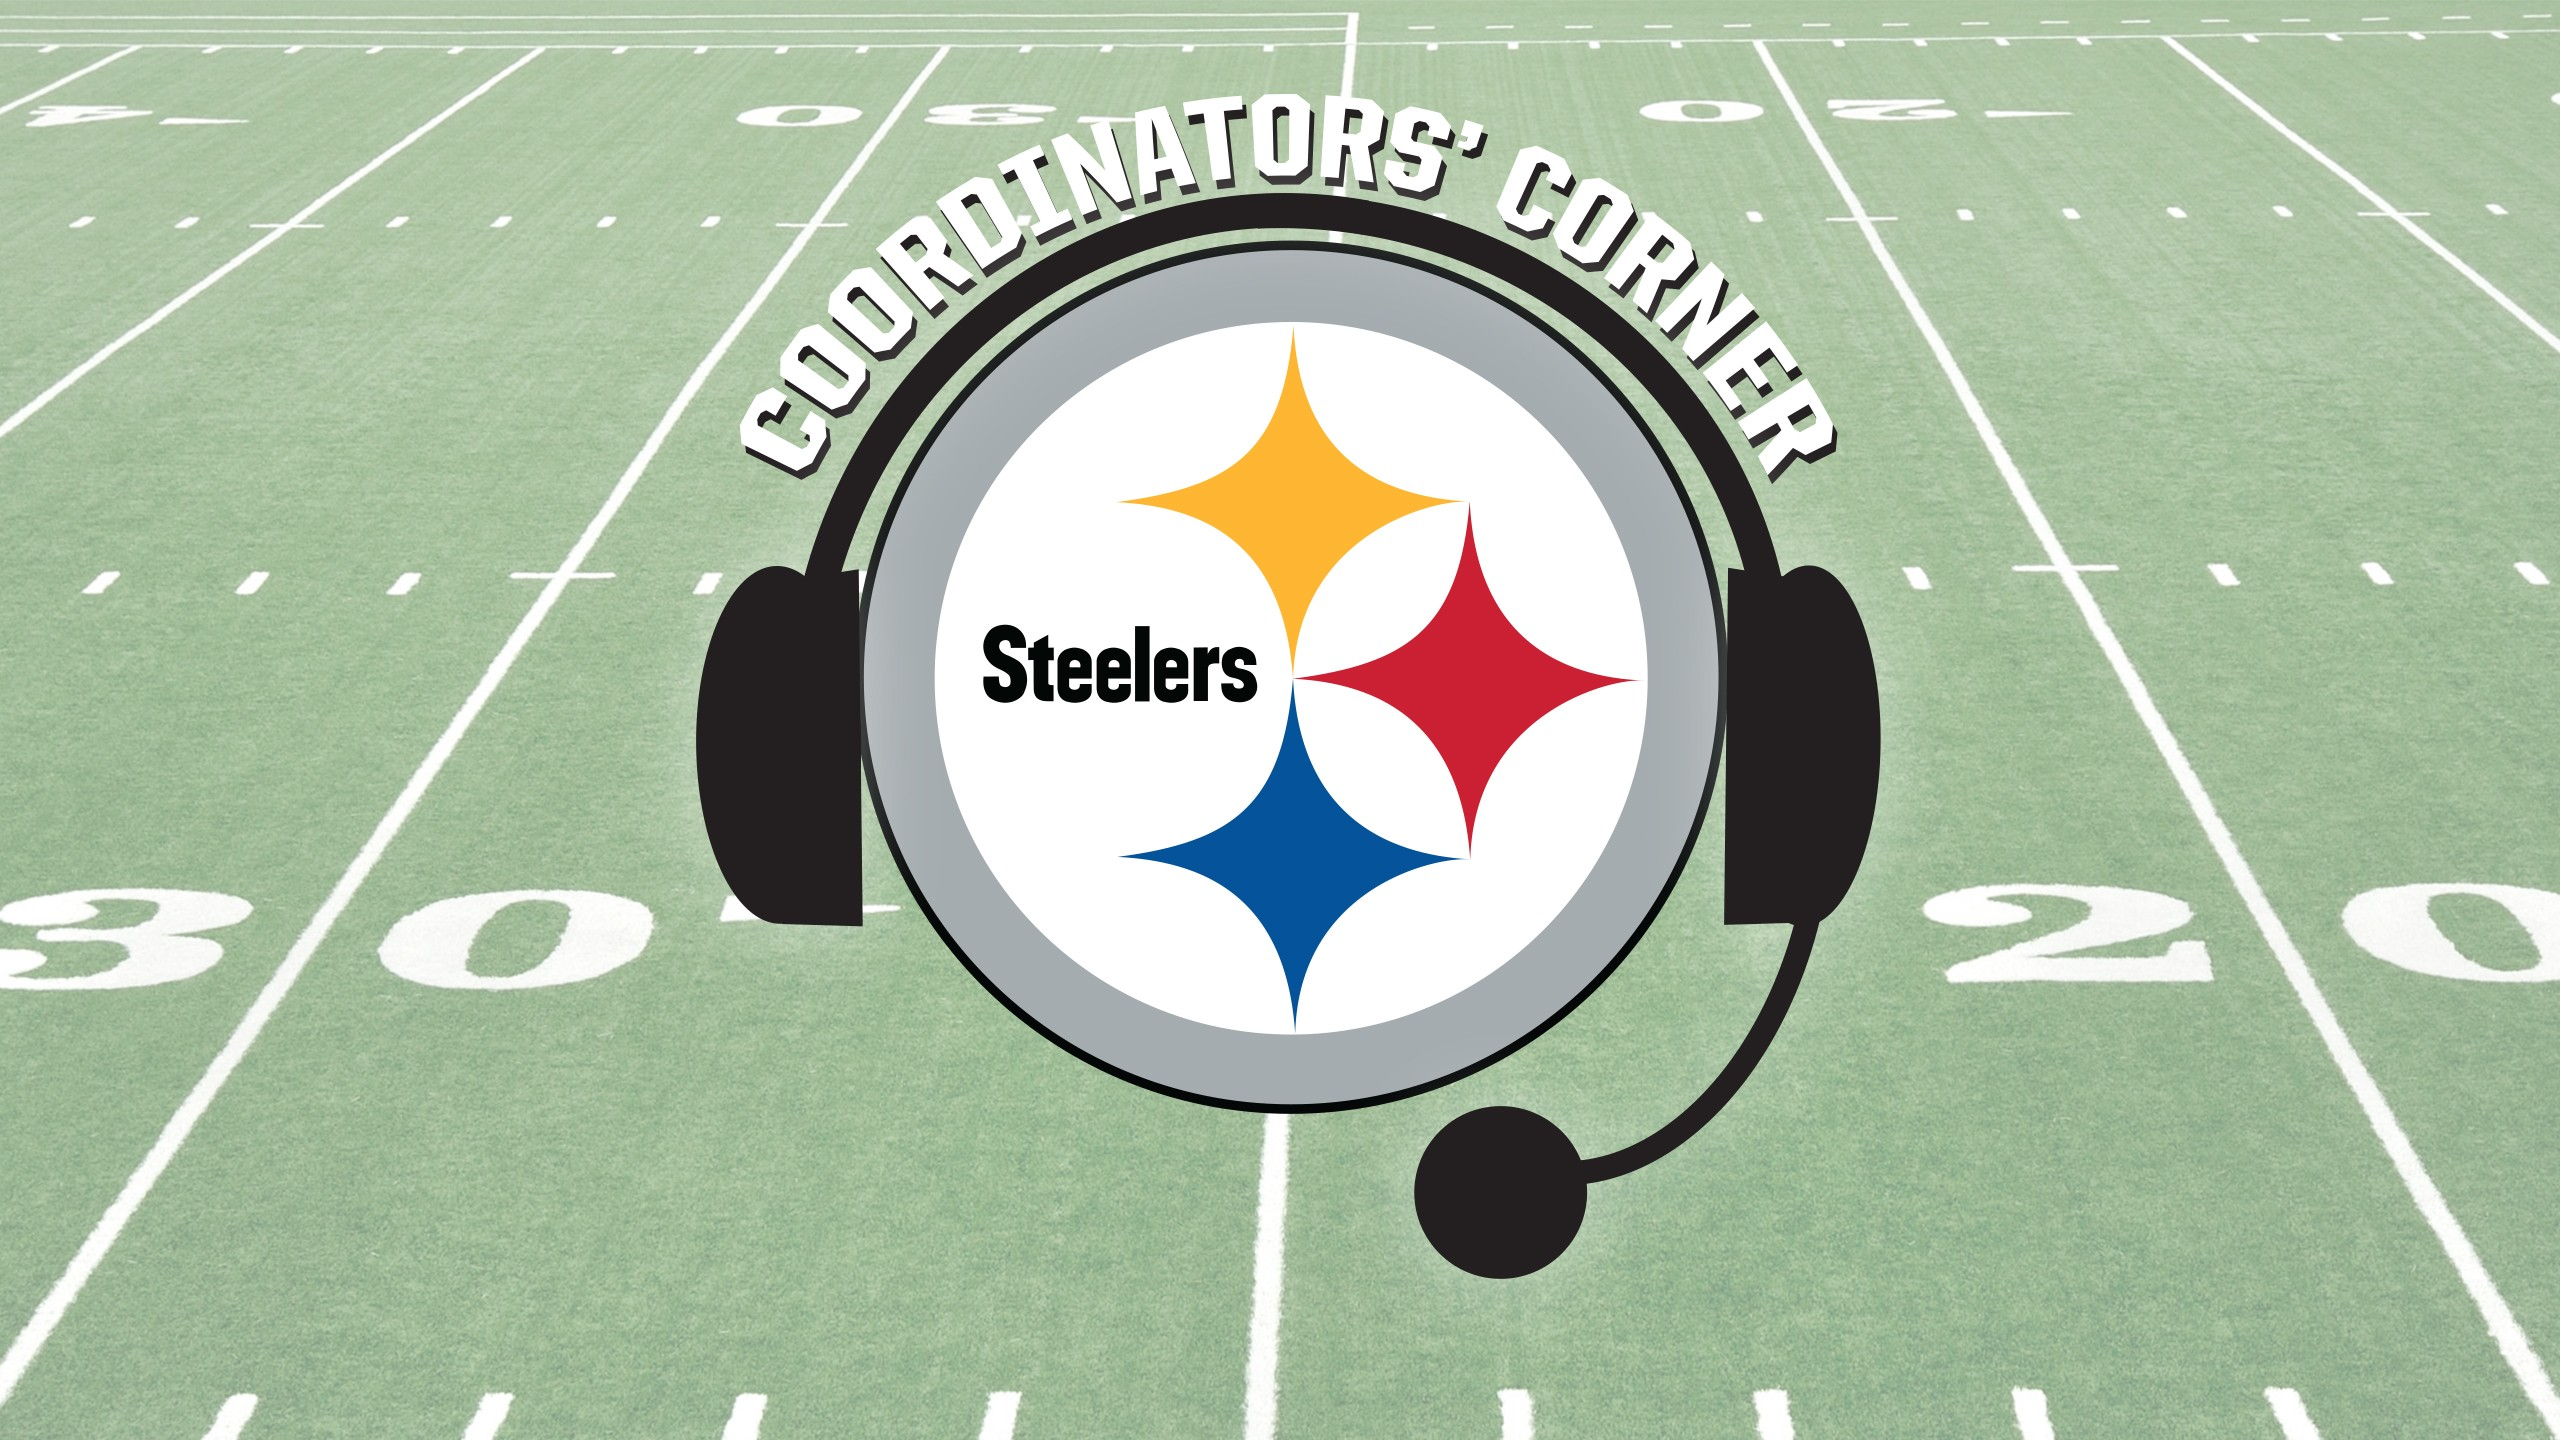 Steelers Home Pittsburgh Light Dimmer Wiring Diagram Httpwwwwayjuncomindexphpmain Page Pictures Coordinators Corner